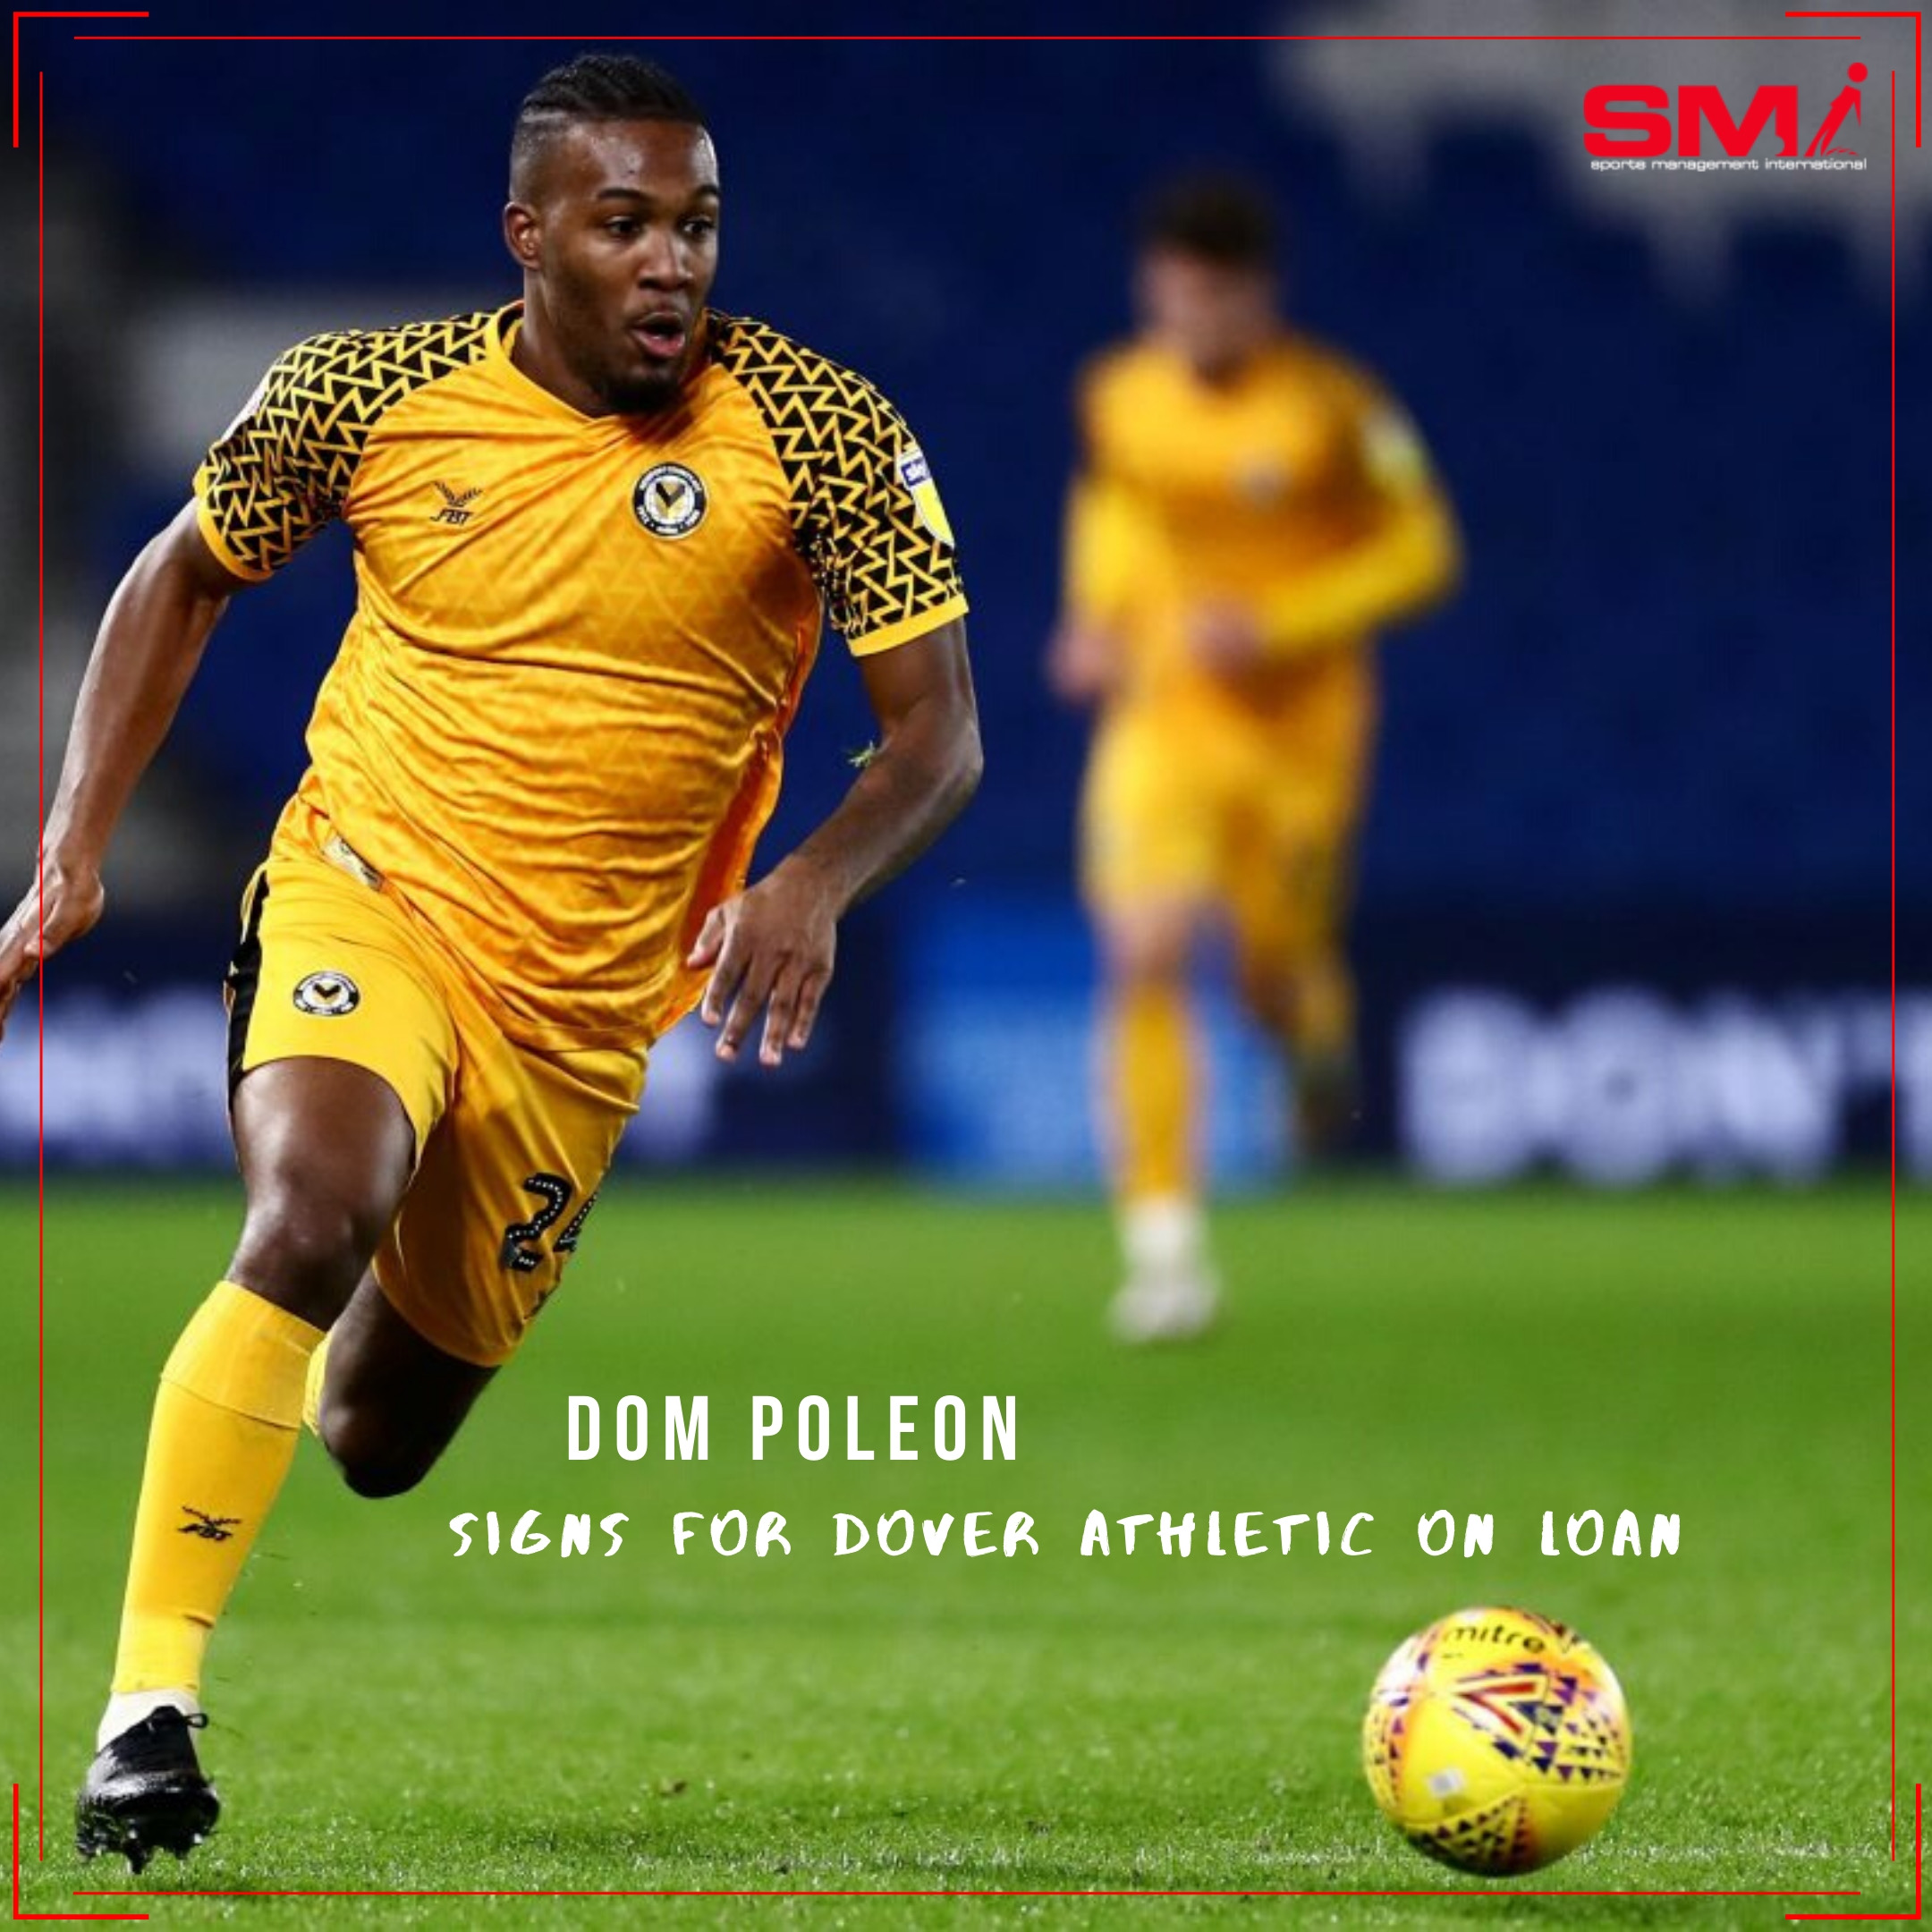 Dom Poleon signs for Dover on loan